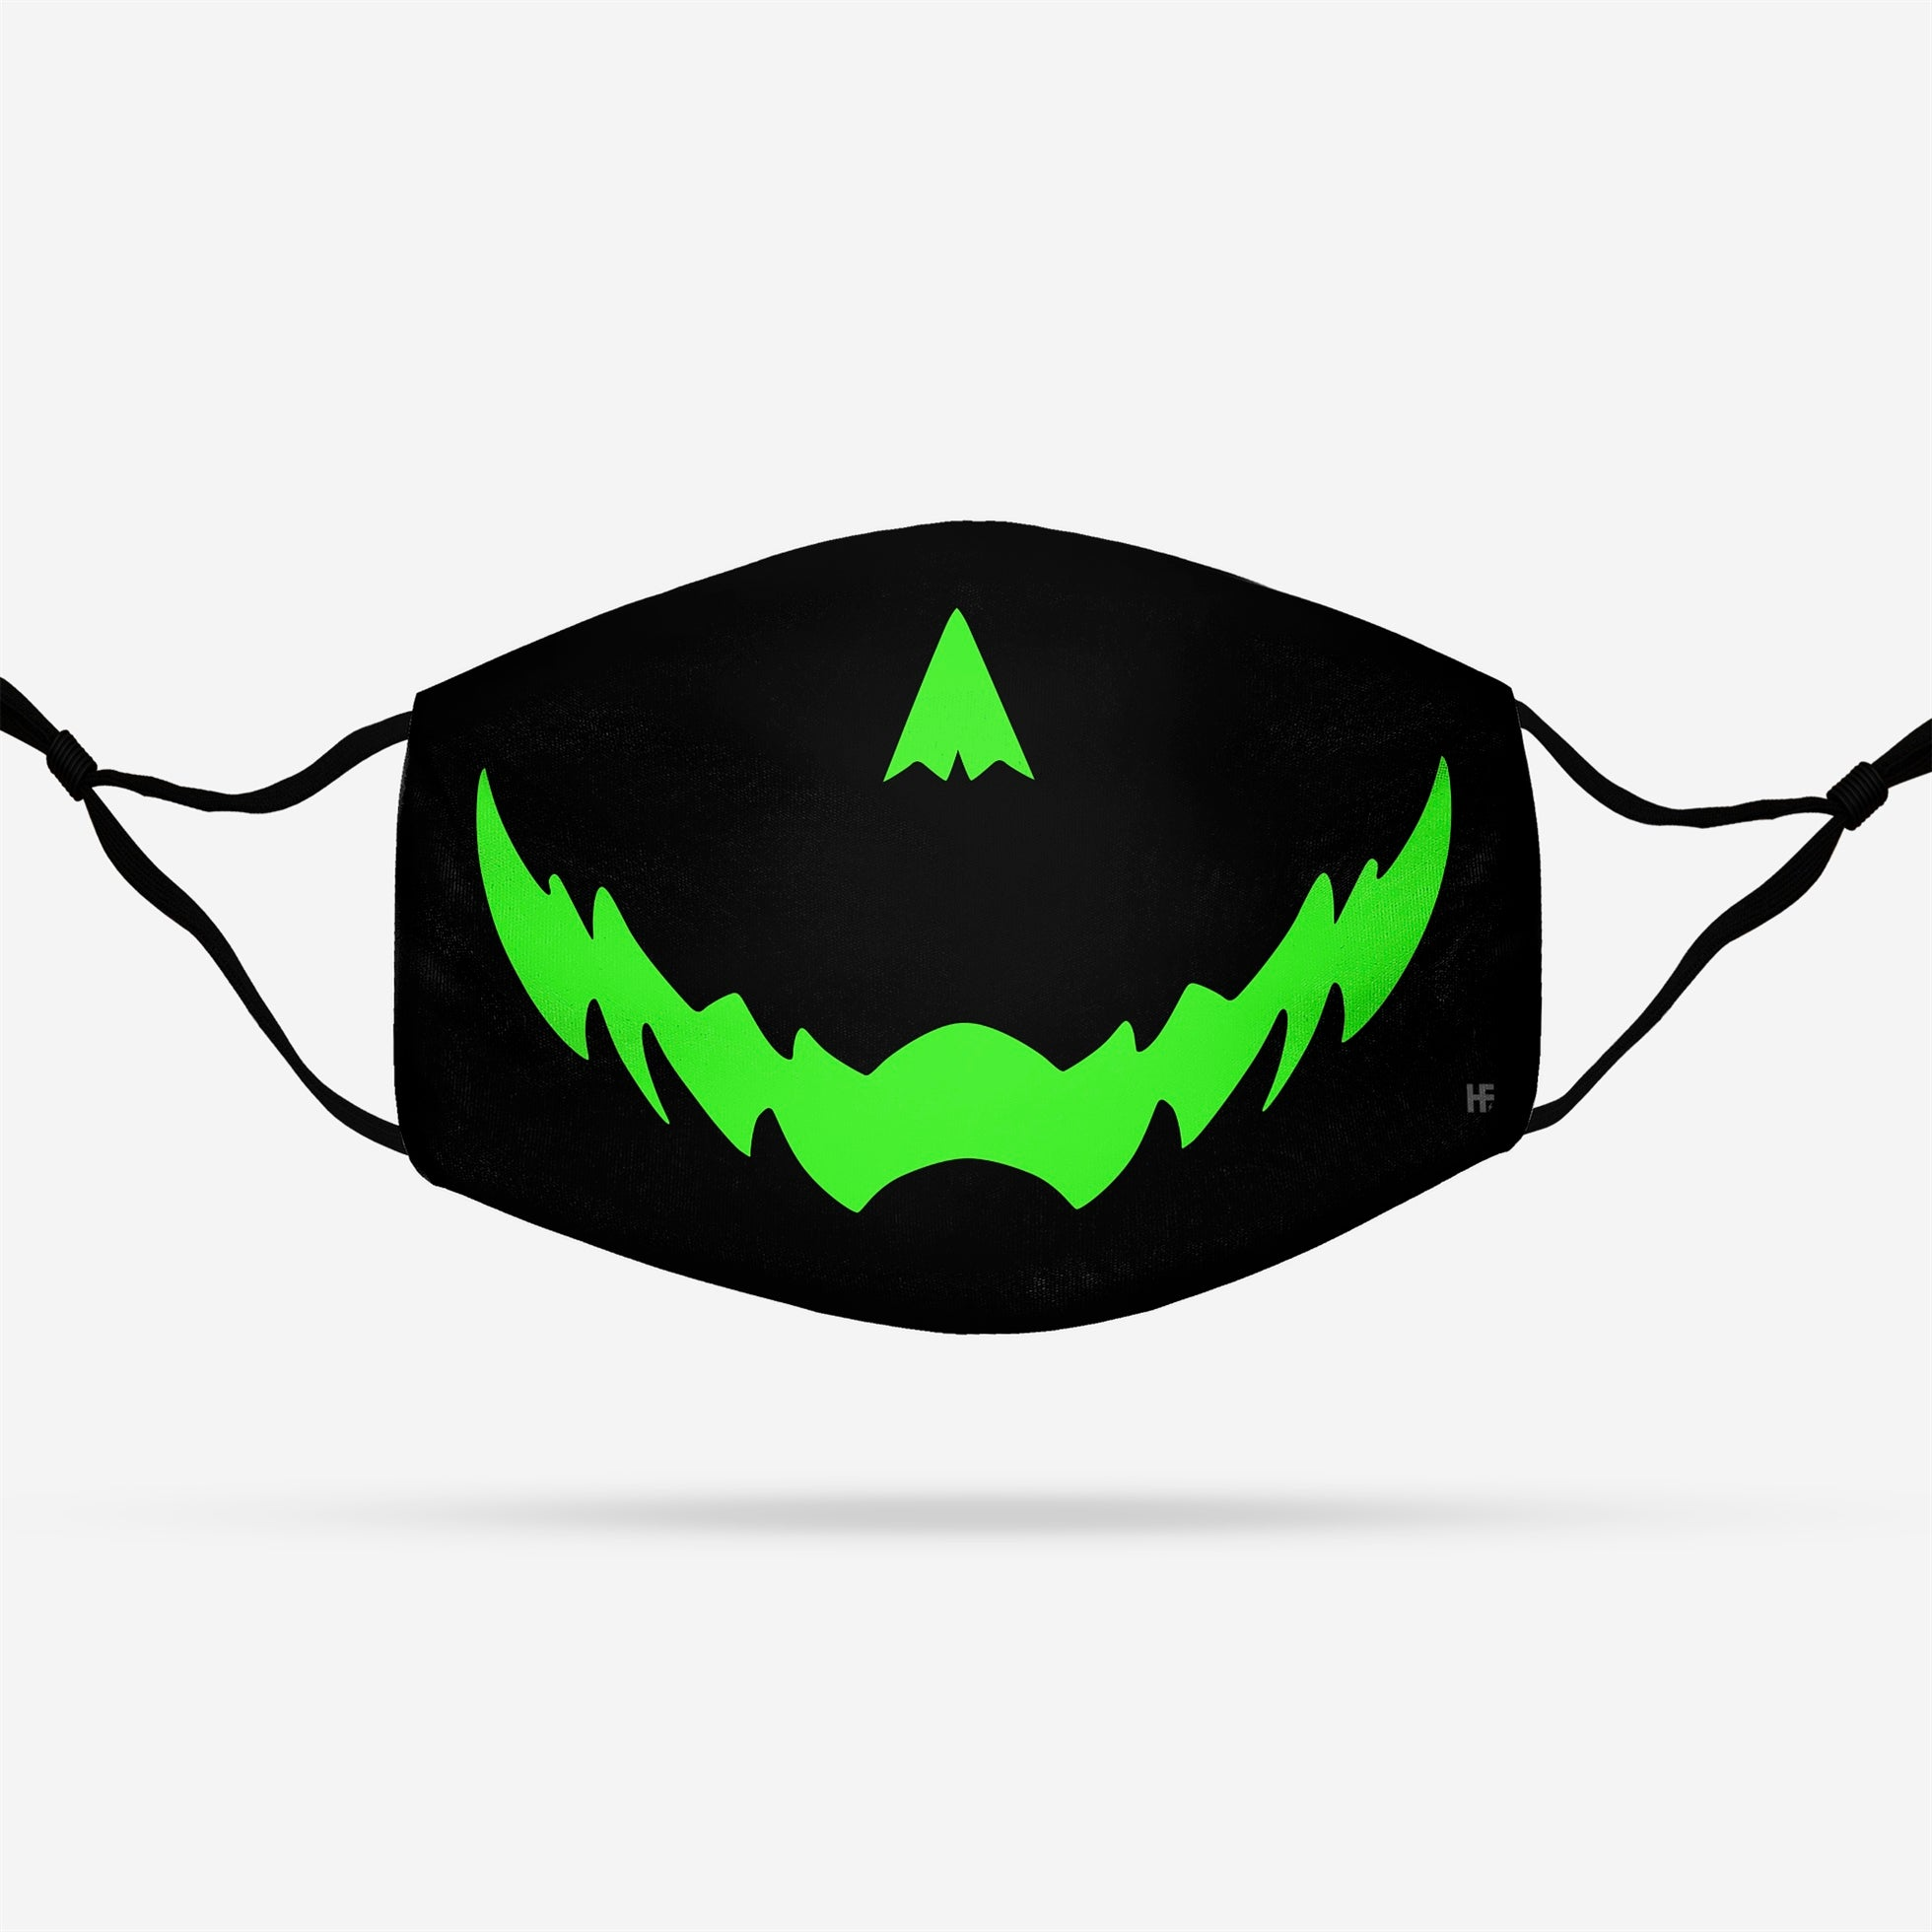 GREEN PUMPKIN FACE EZ20 2108 Face Mask - Hyperfavor